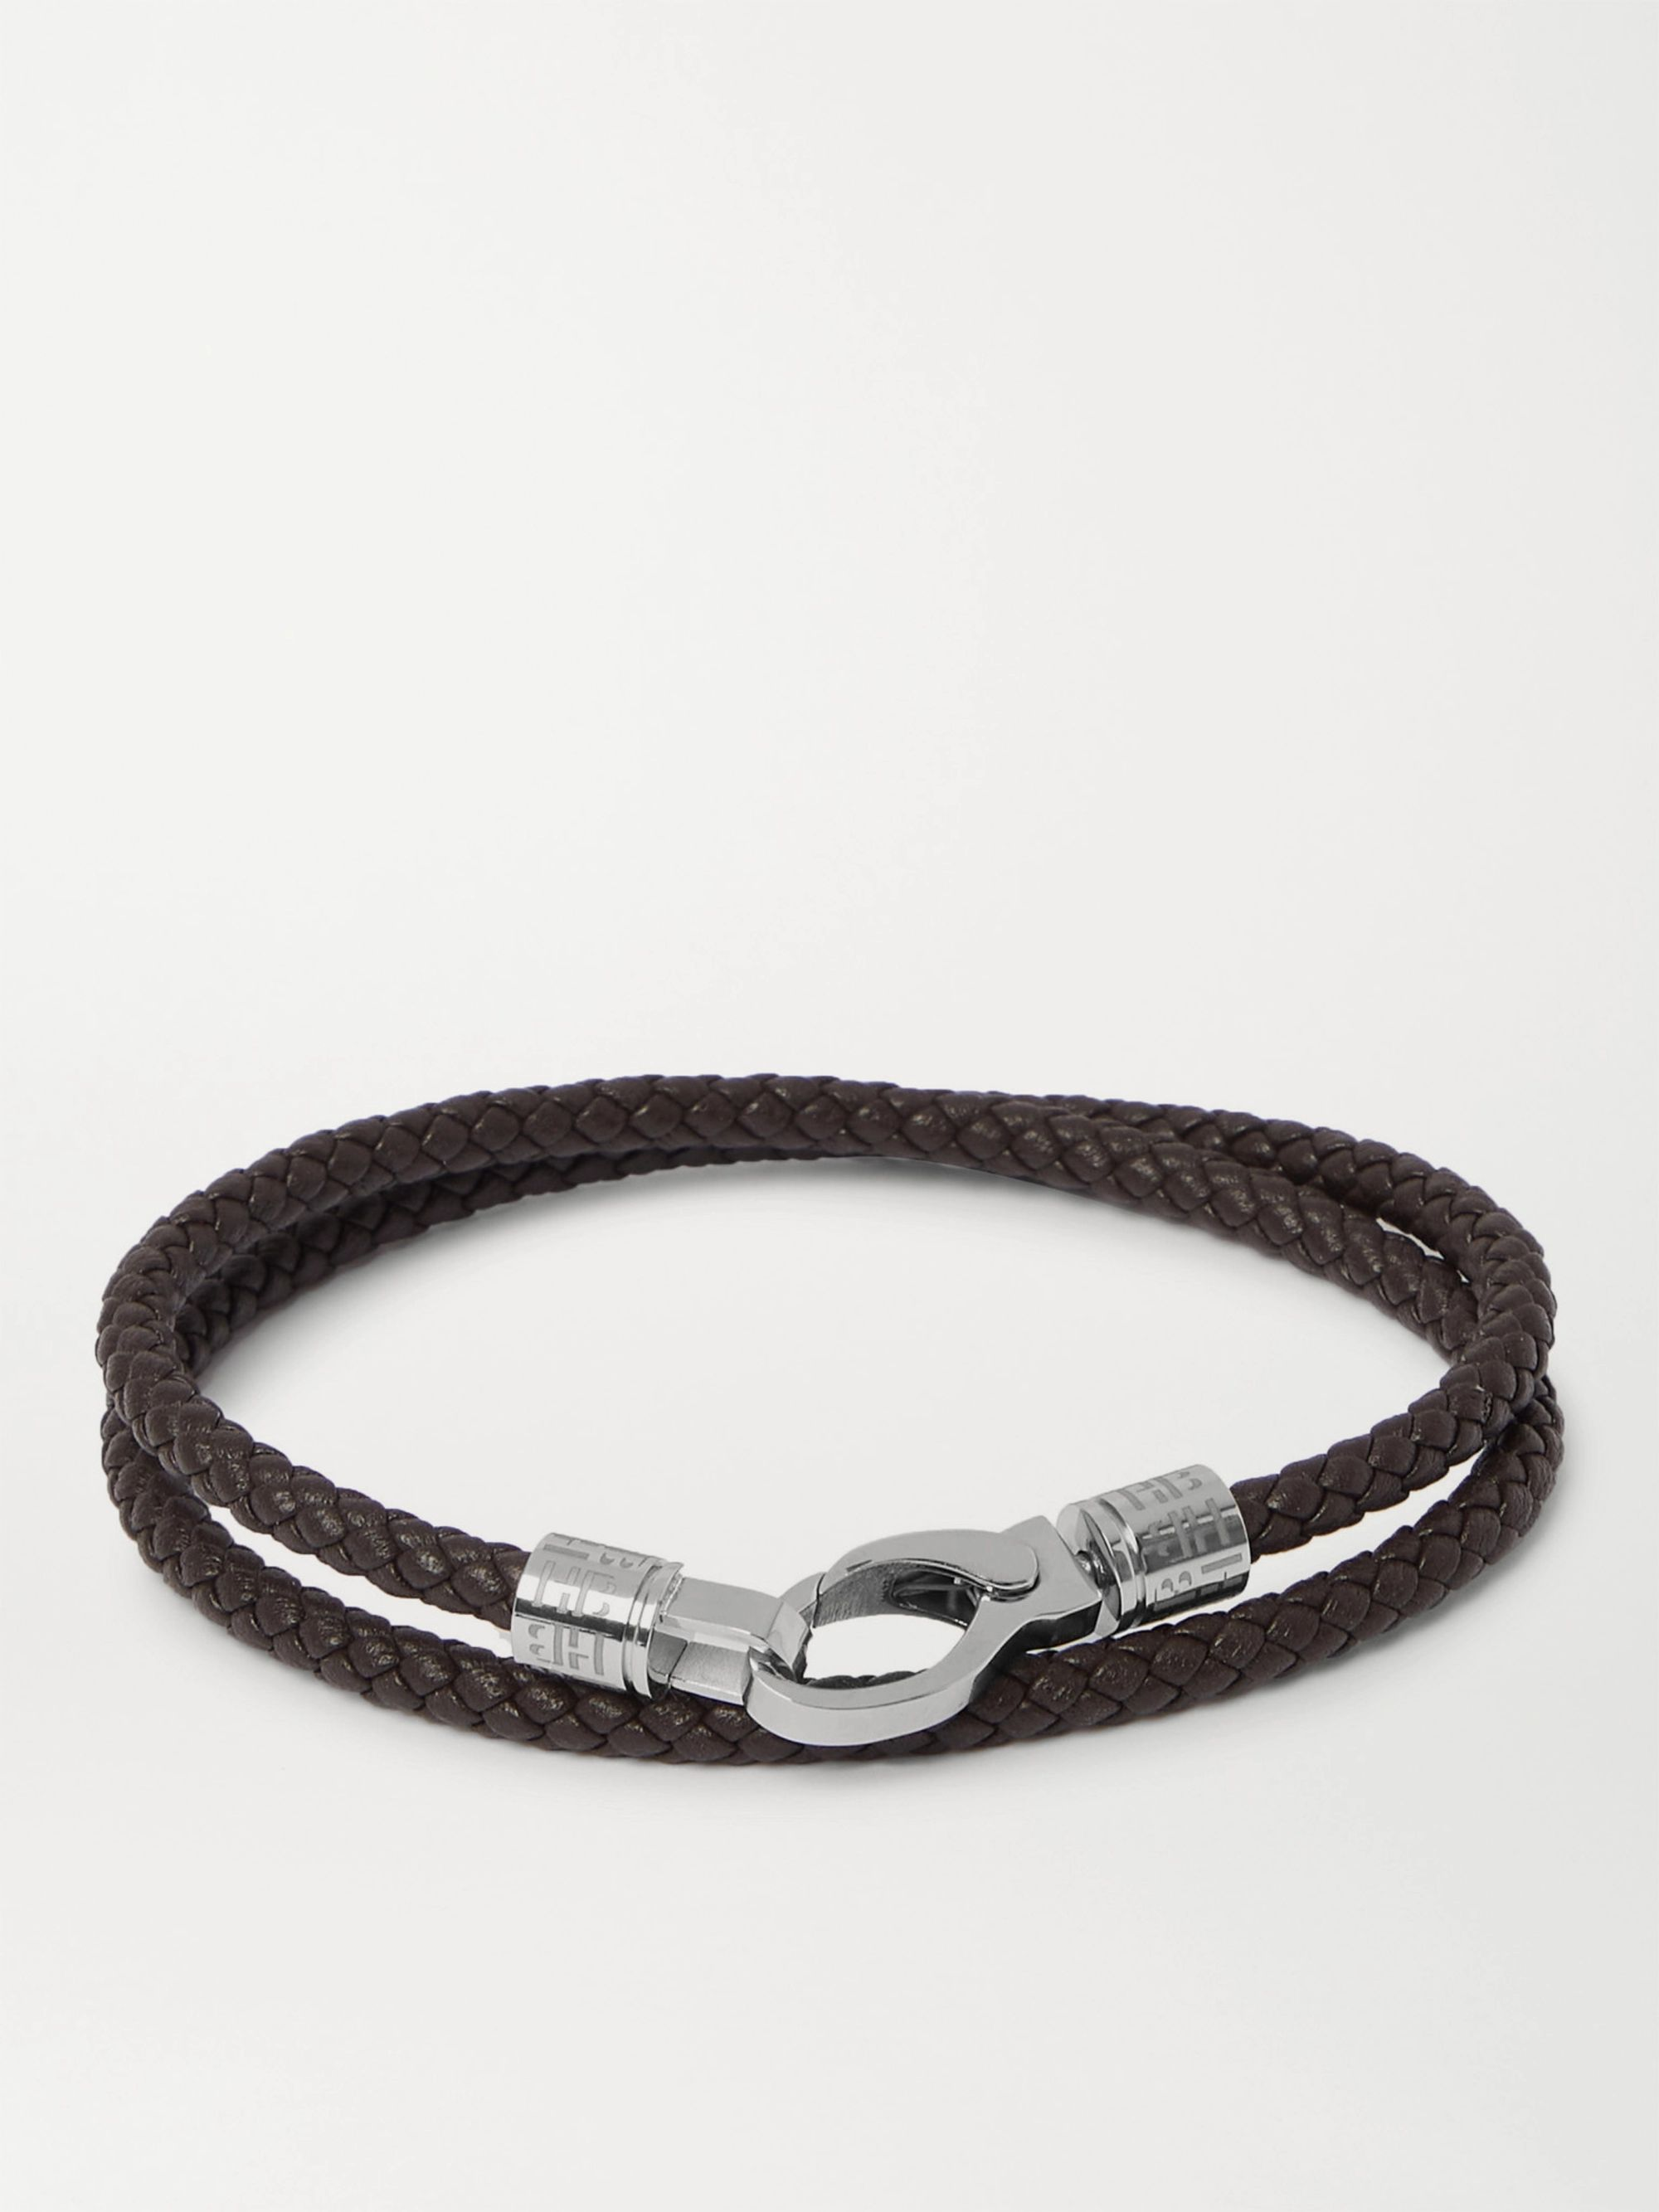 HUGO BOSS Woven Leather and Silver-Tone Wrap Bracelet